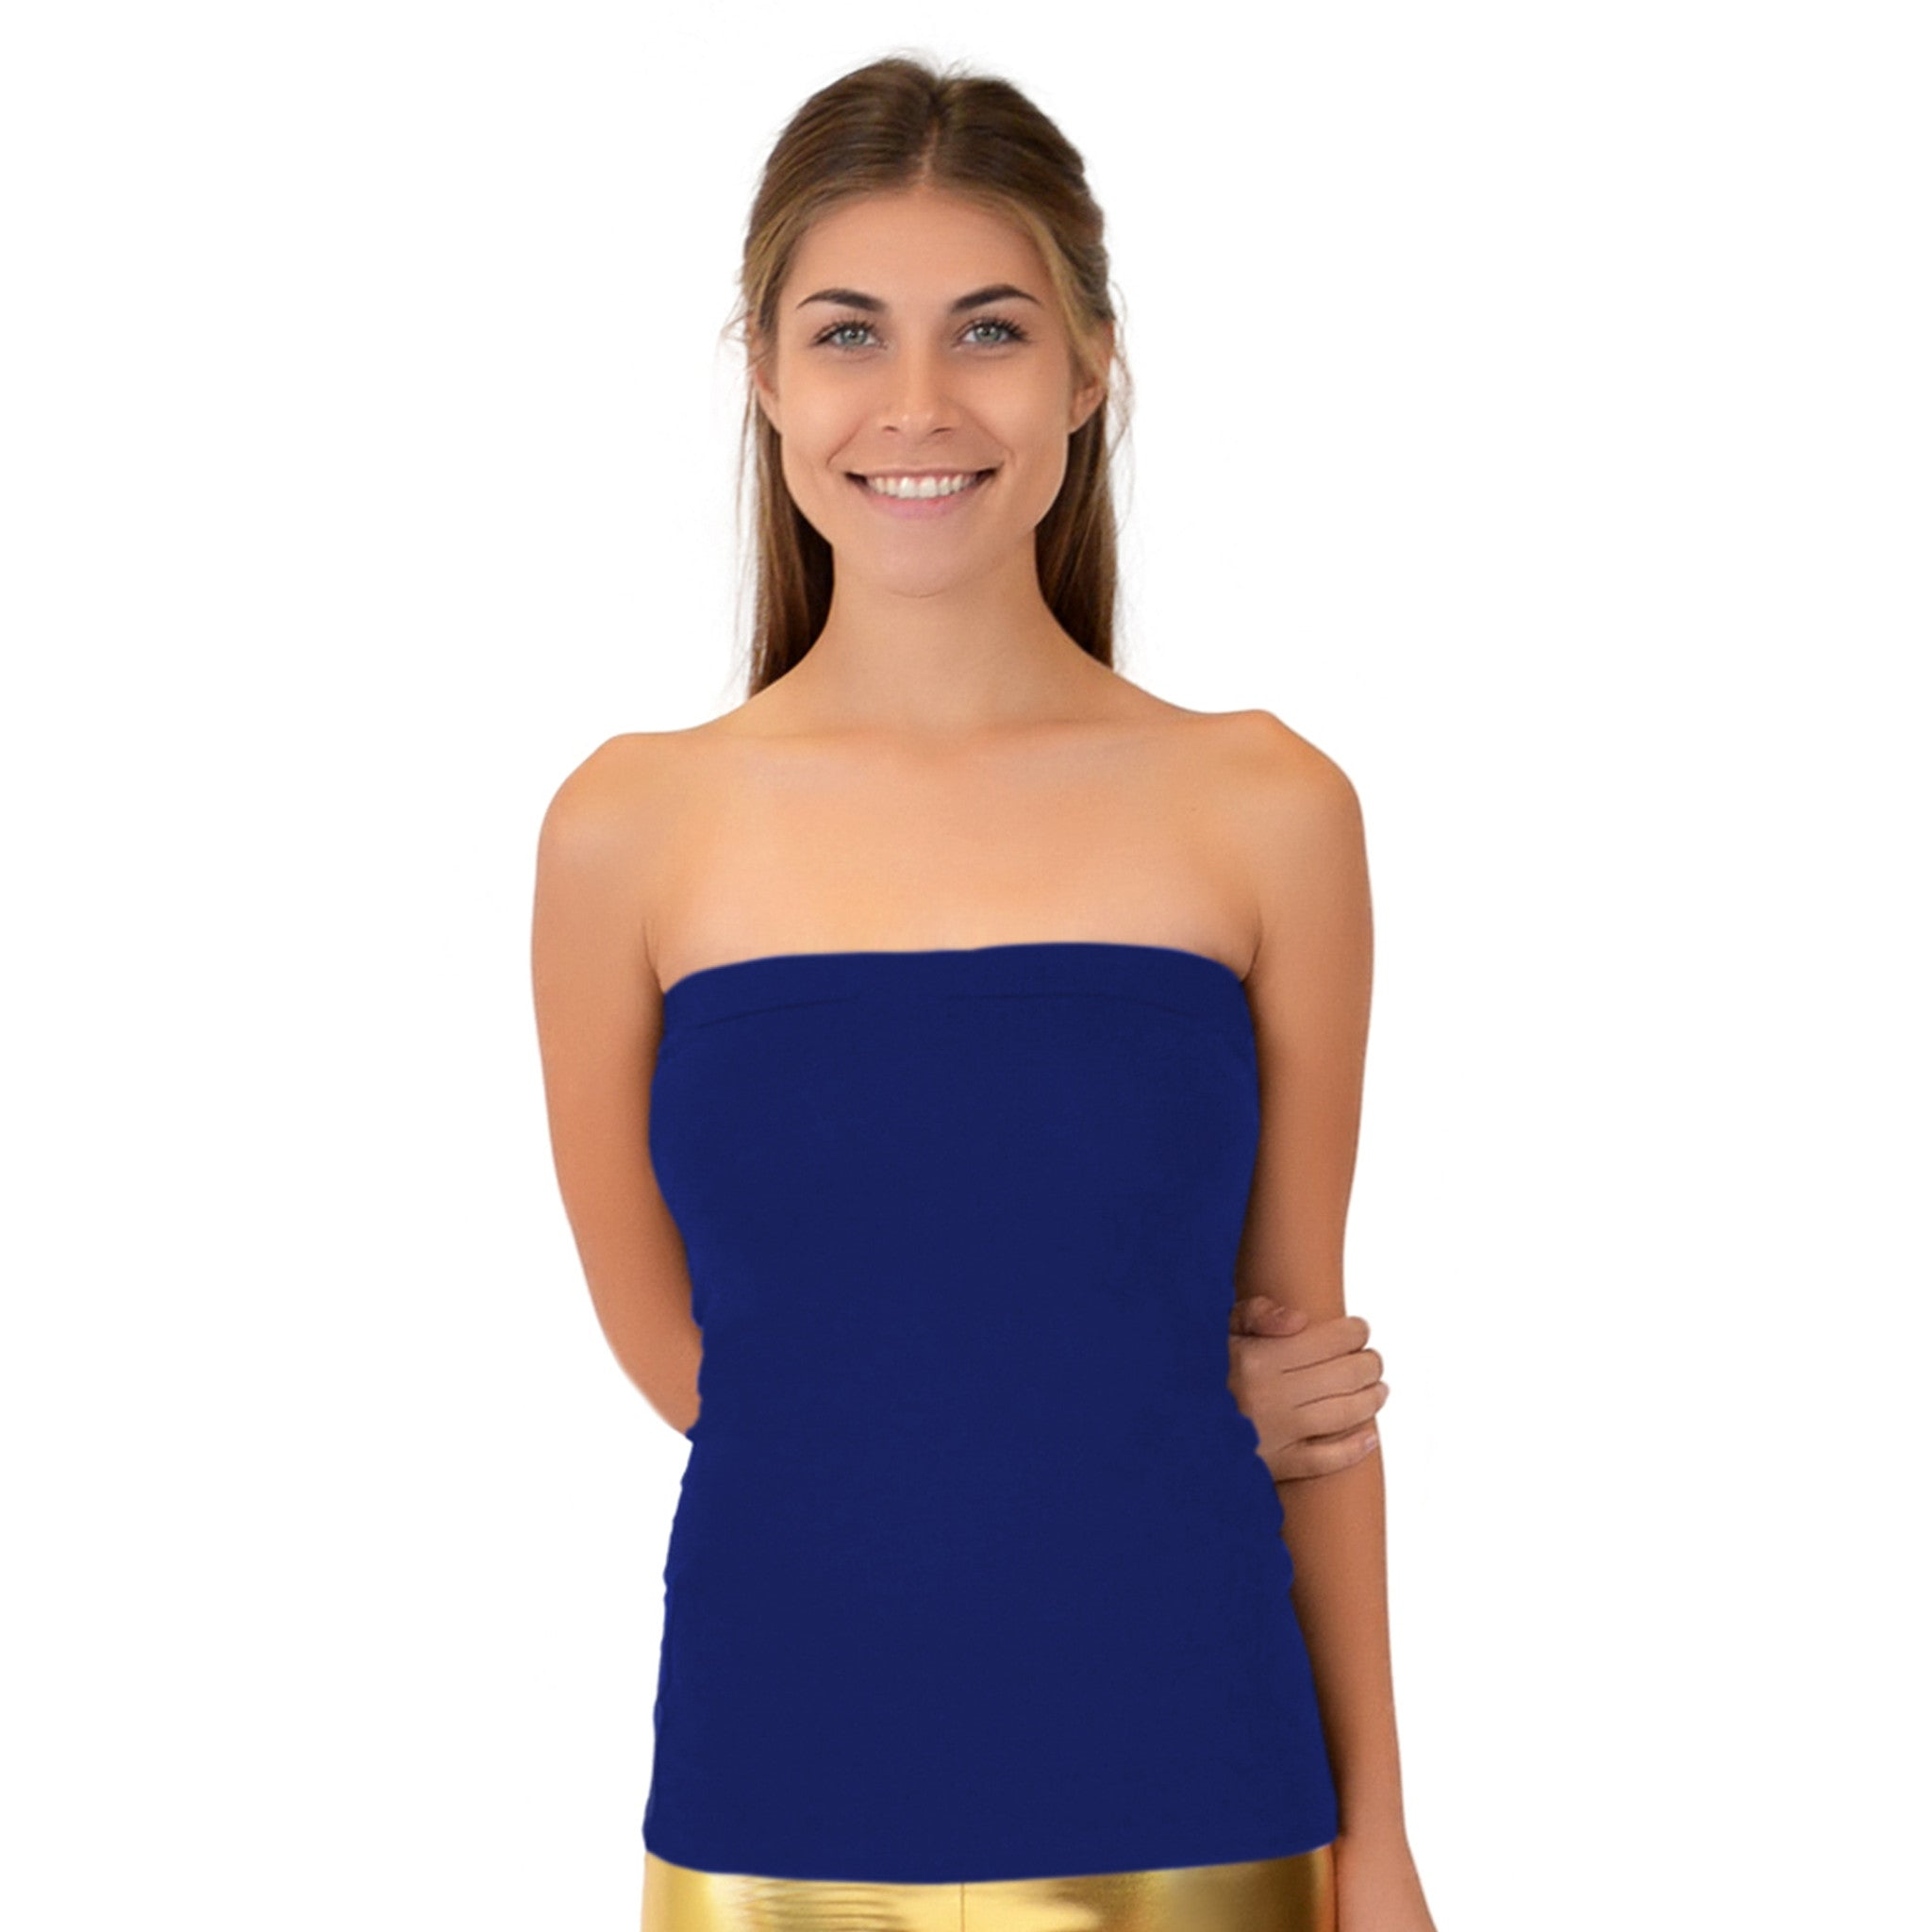 ca753accfa04b Stretch is comfort teamwear cotton strapless tube top jpg 2048x2048 Strapless  tops